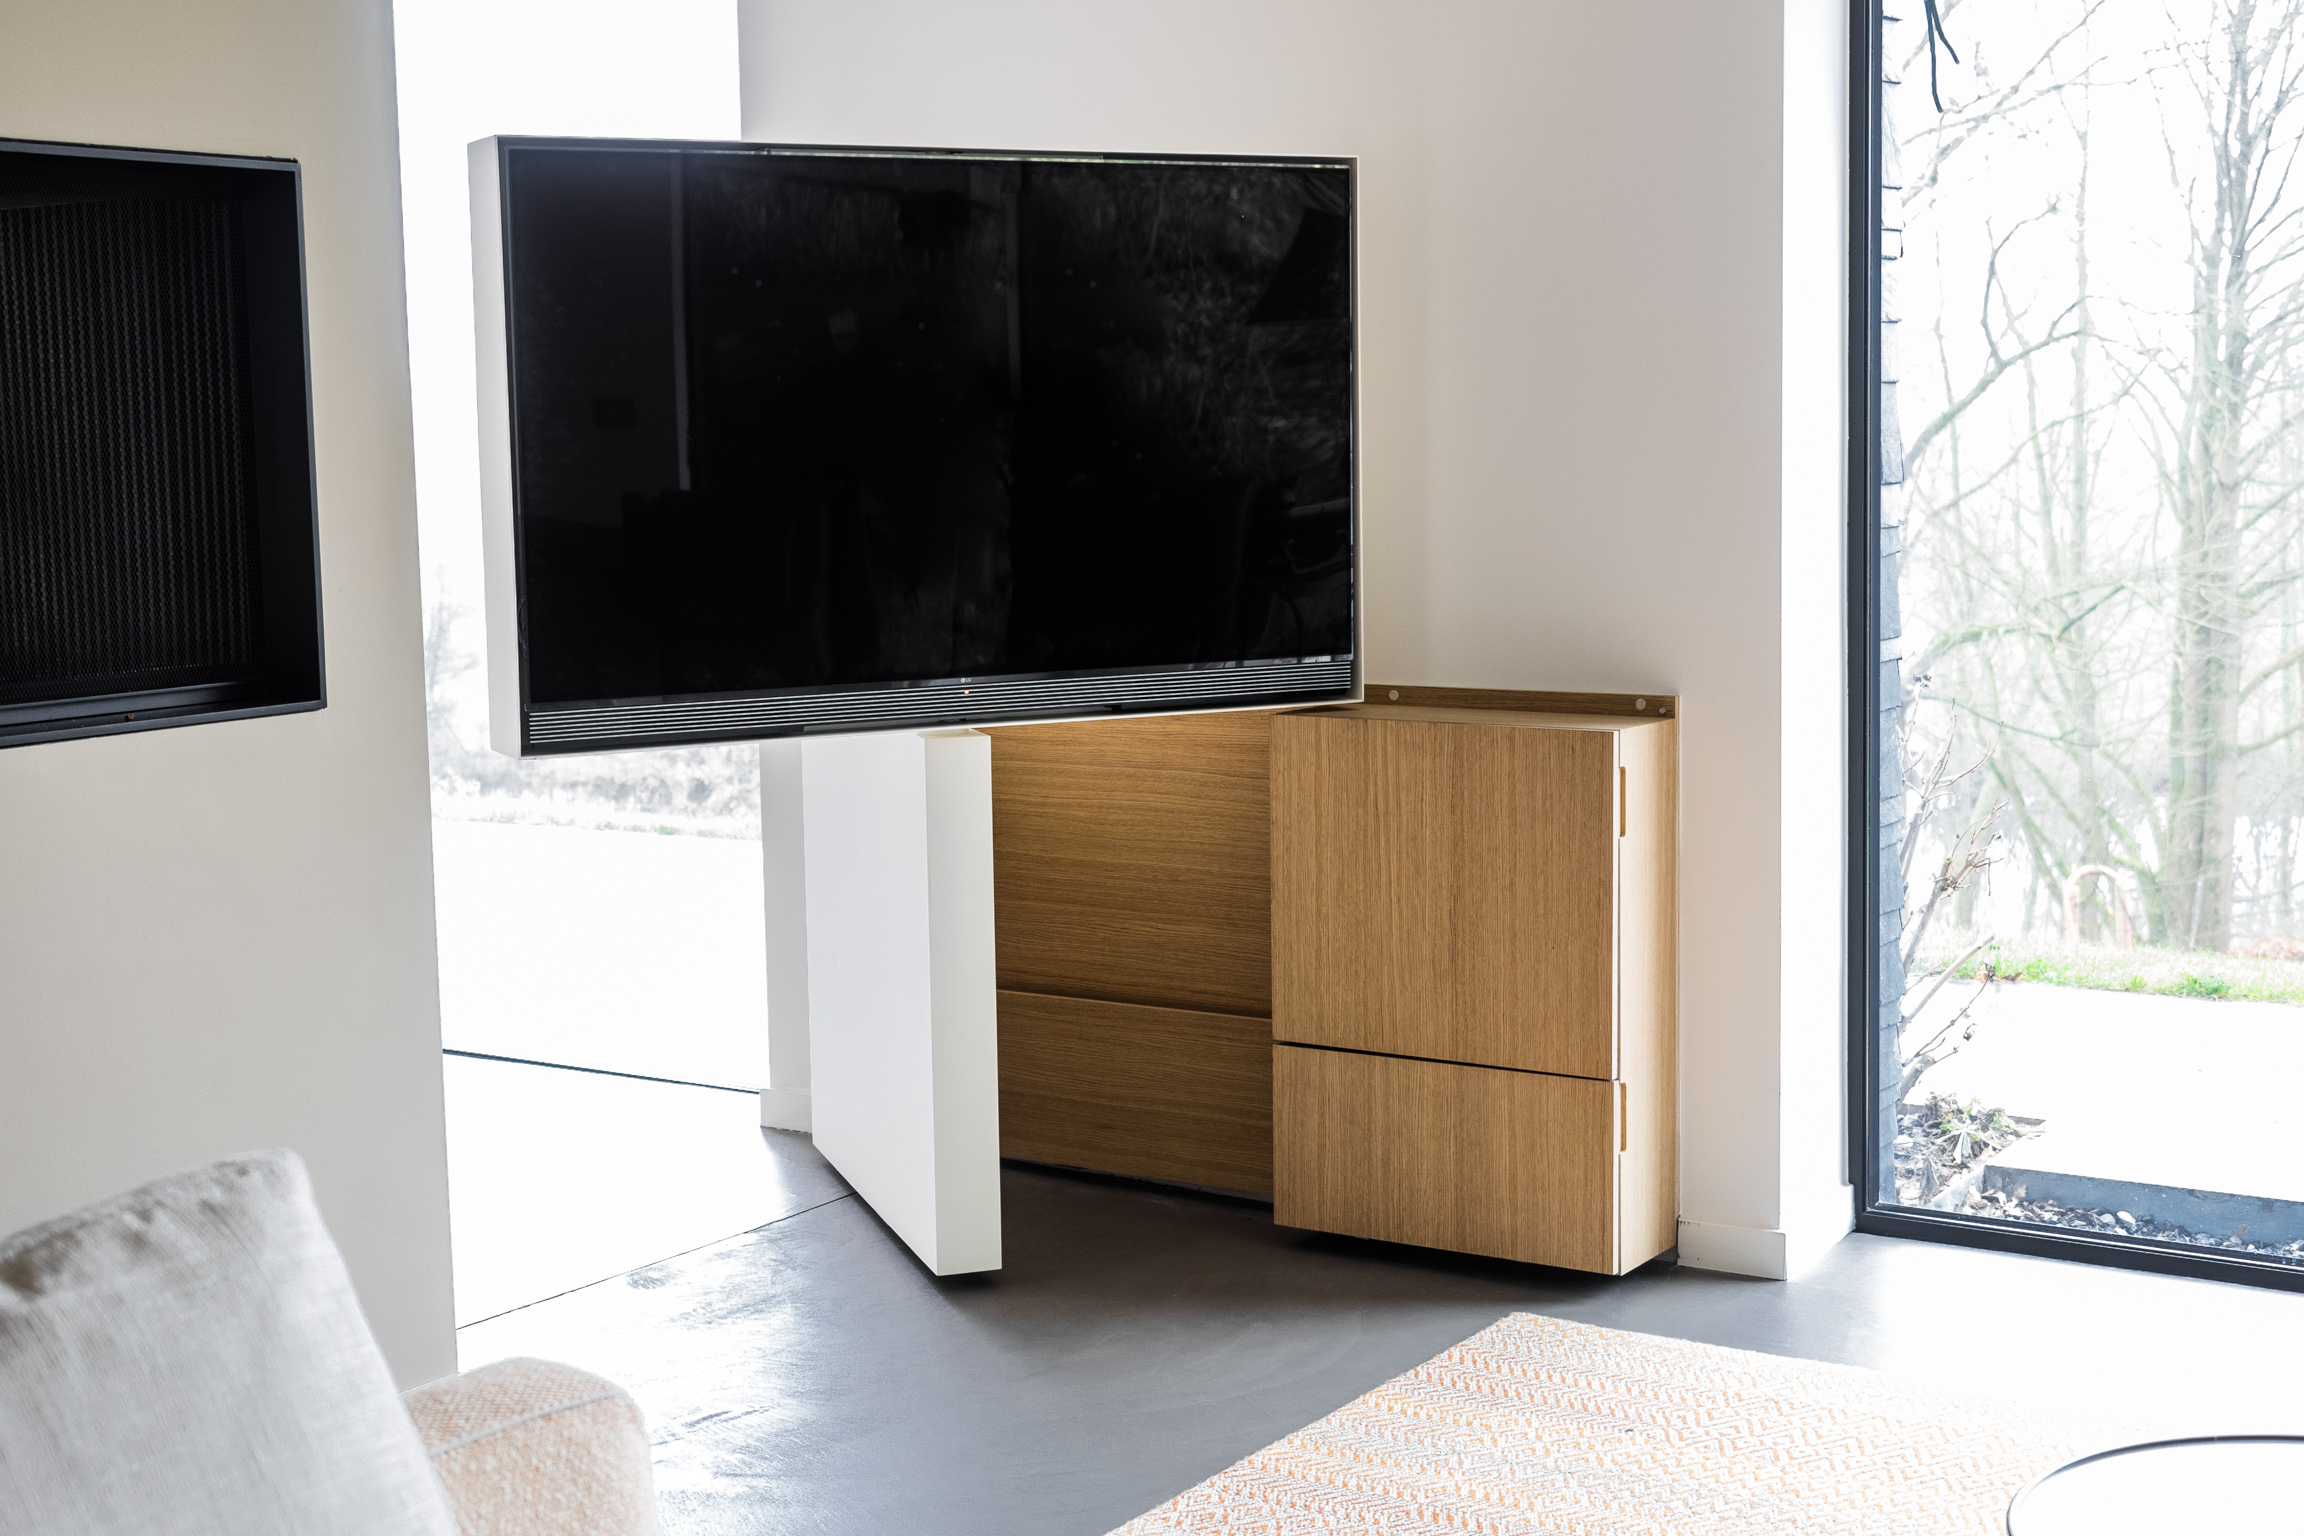 Meuble Tv Pivotant En Acier Et Bois Pivoting Tv Set Made Of Steel  # Meuble Tv Pivotant Design